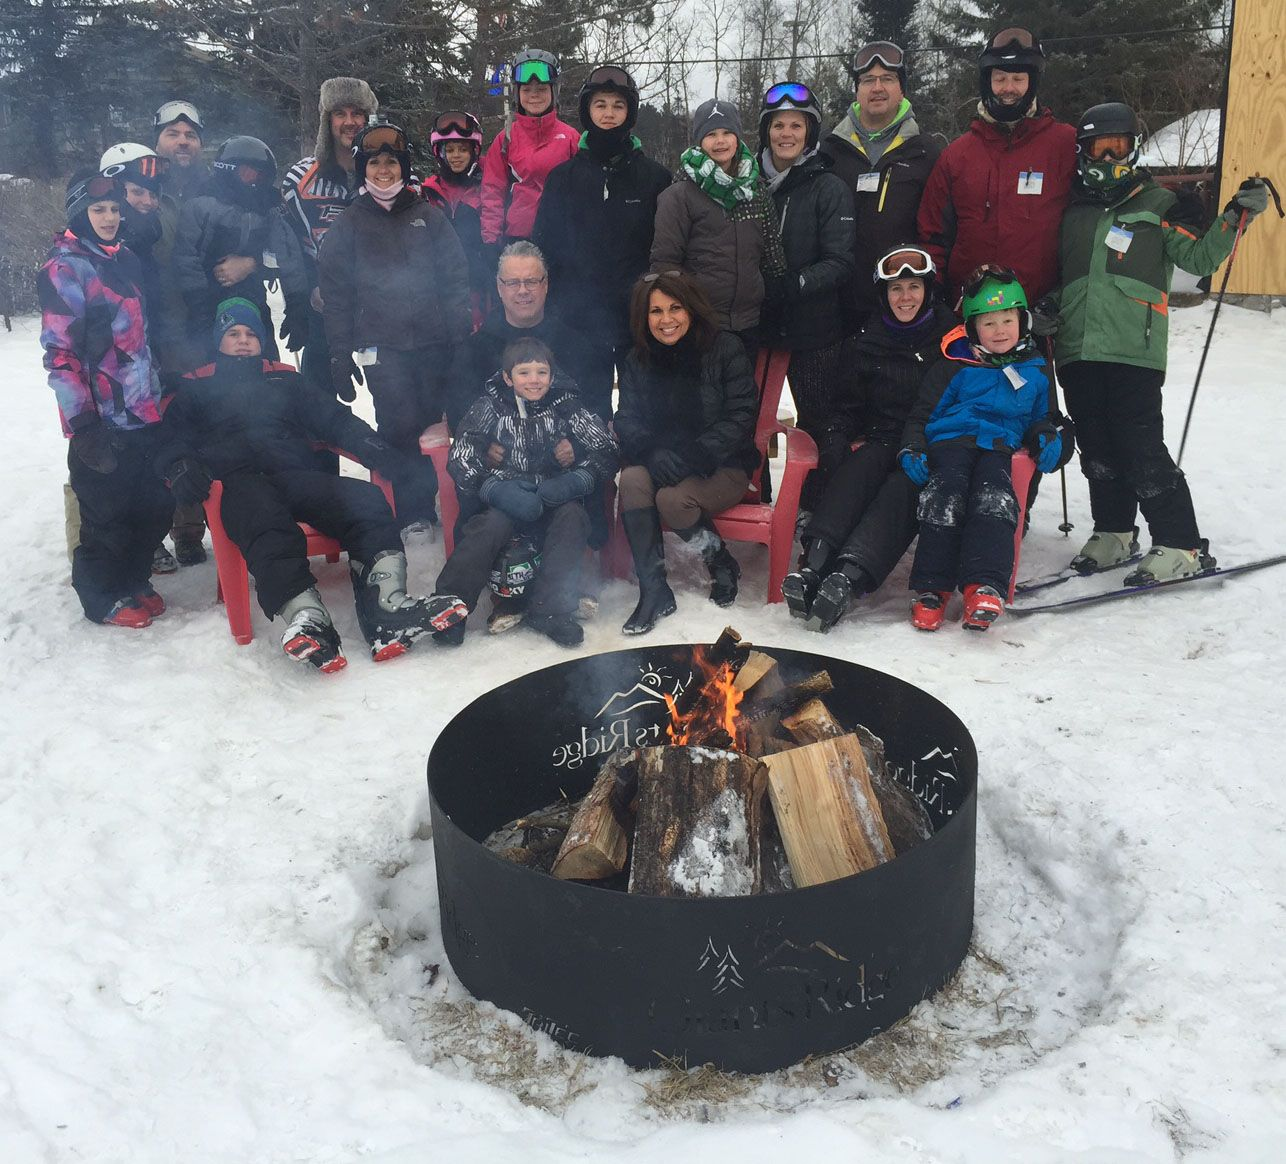 The fire pit near the Ice Bar at GiantsRidge! Ice Bar